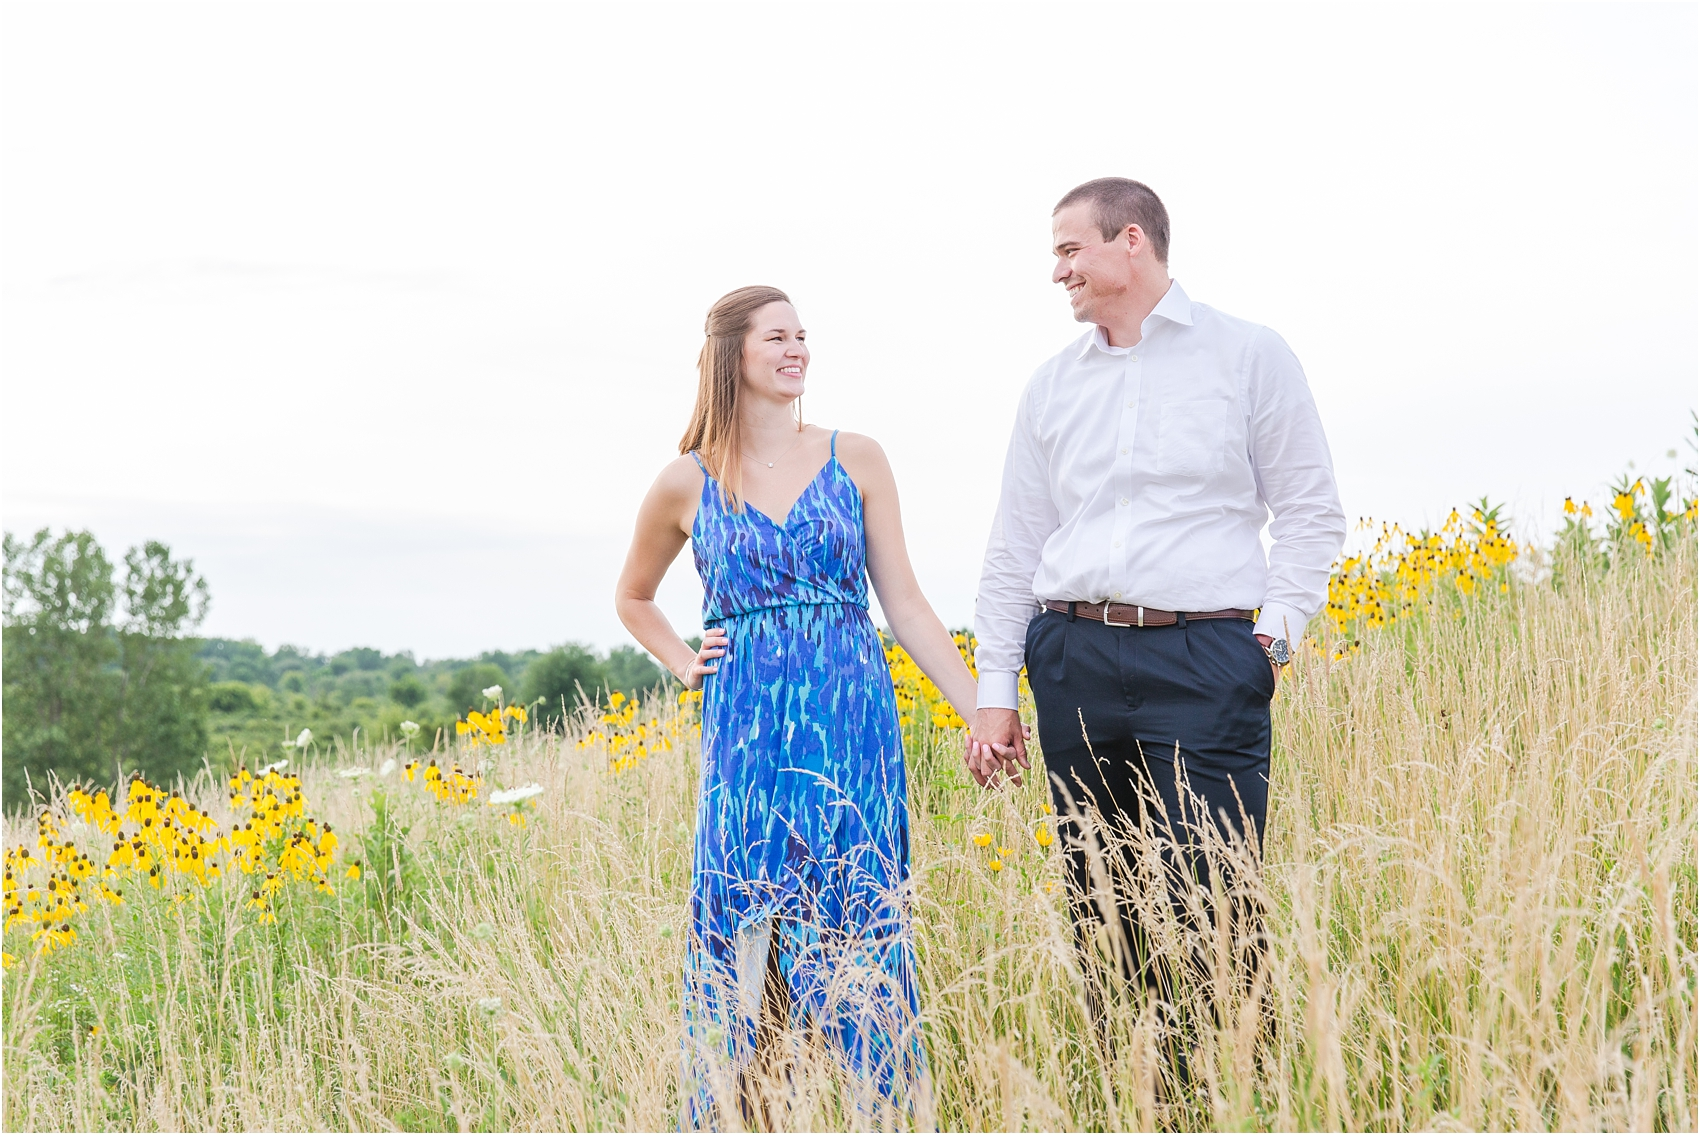 light-hearted-sunset-engagement-photos-at-the-beach-in-oregon-oh-by-courtney-carolyn-photography_0015.jpg